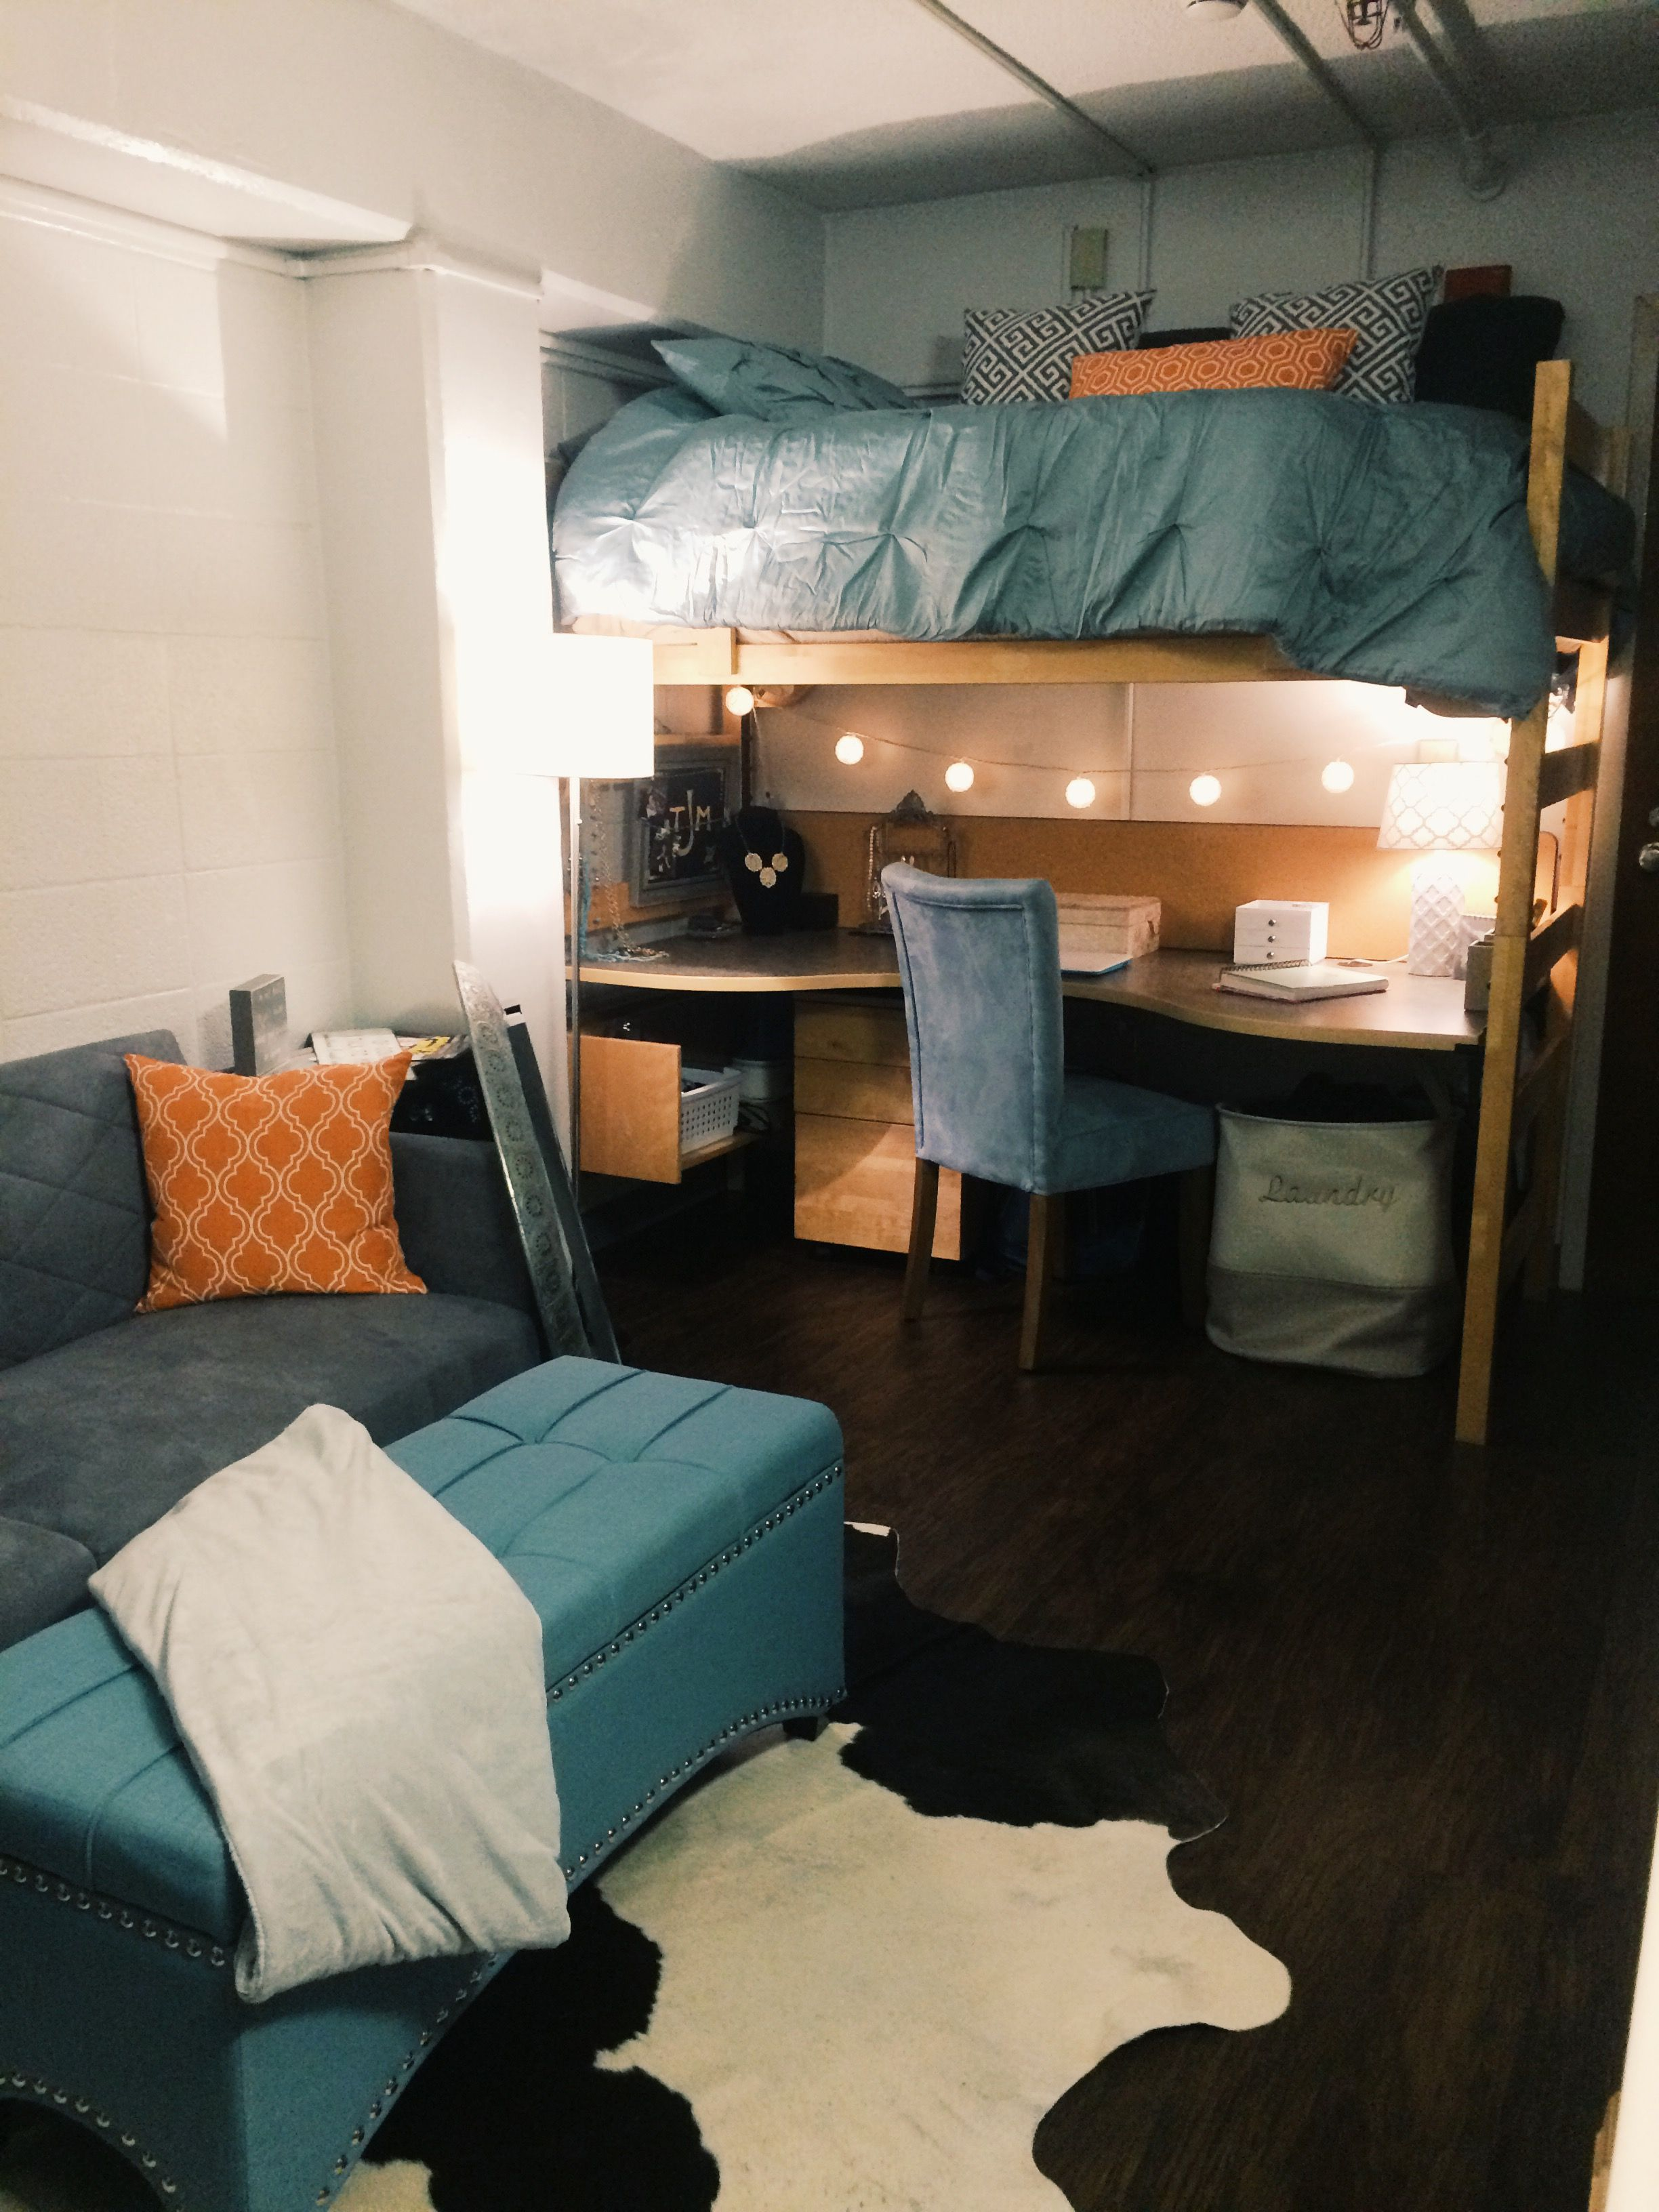 Dorm room furniture layout - Other Half Of The Dorm Room In Morril Hall At The University Of Tennessee